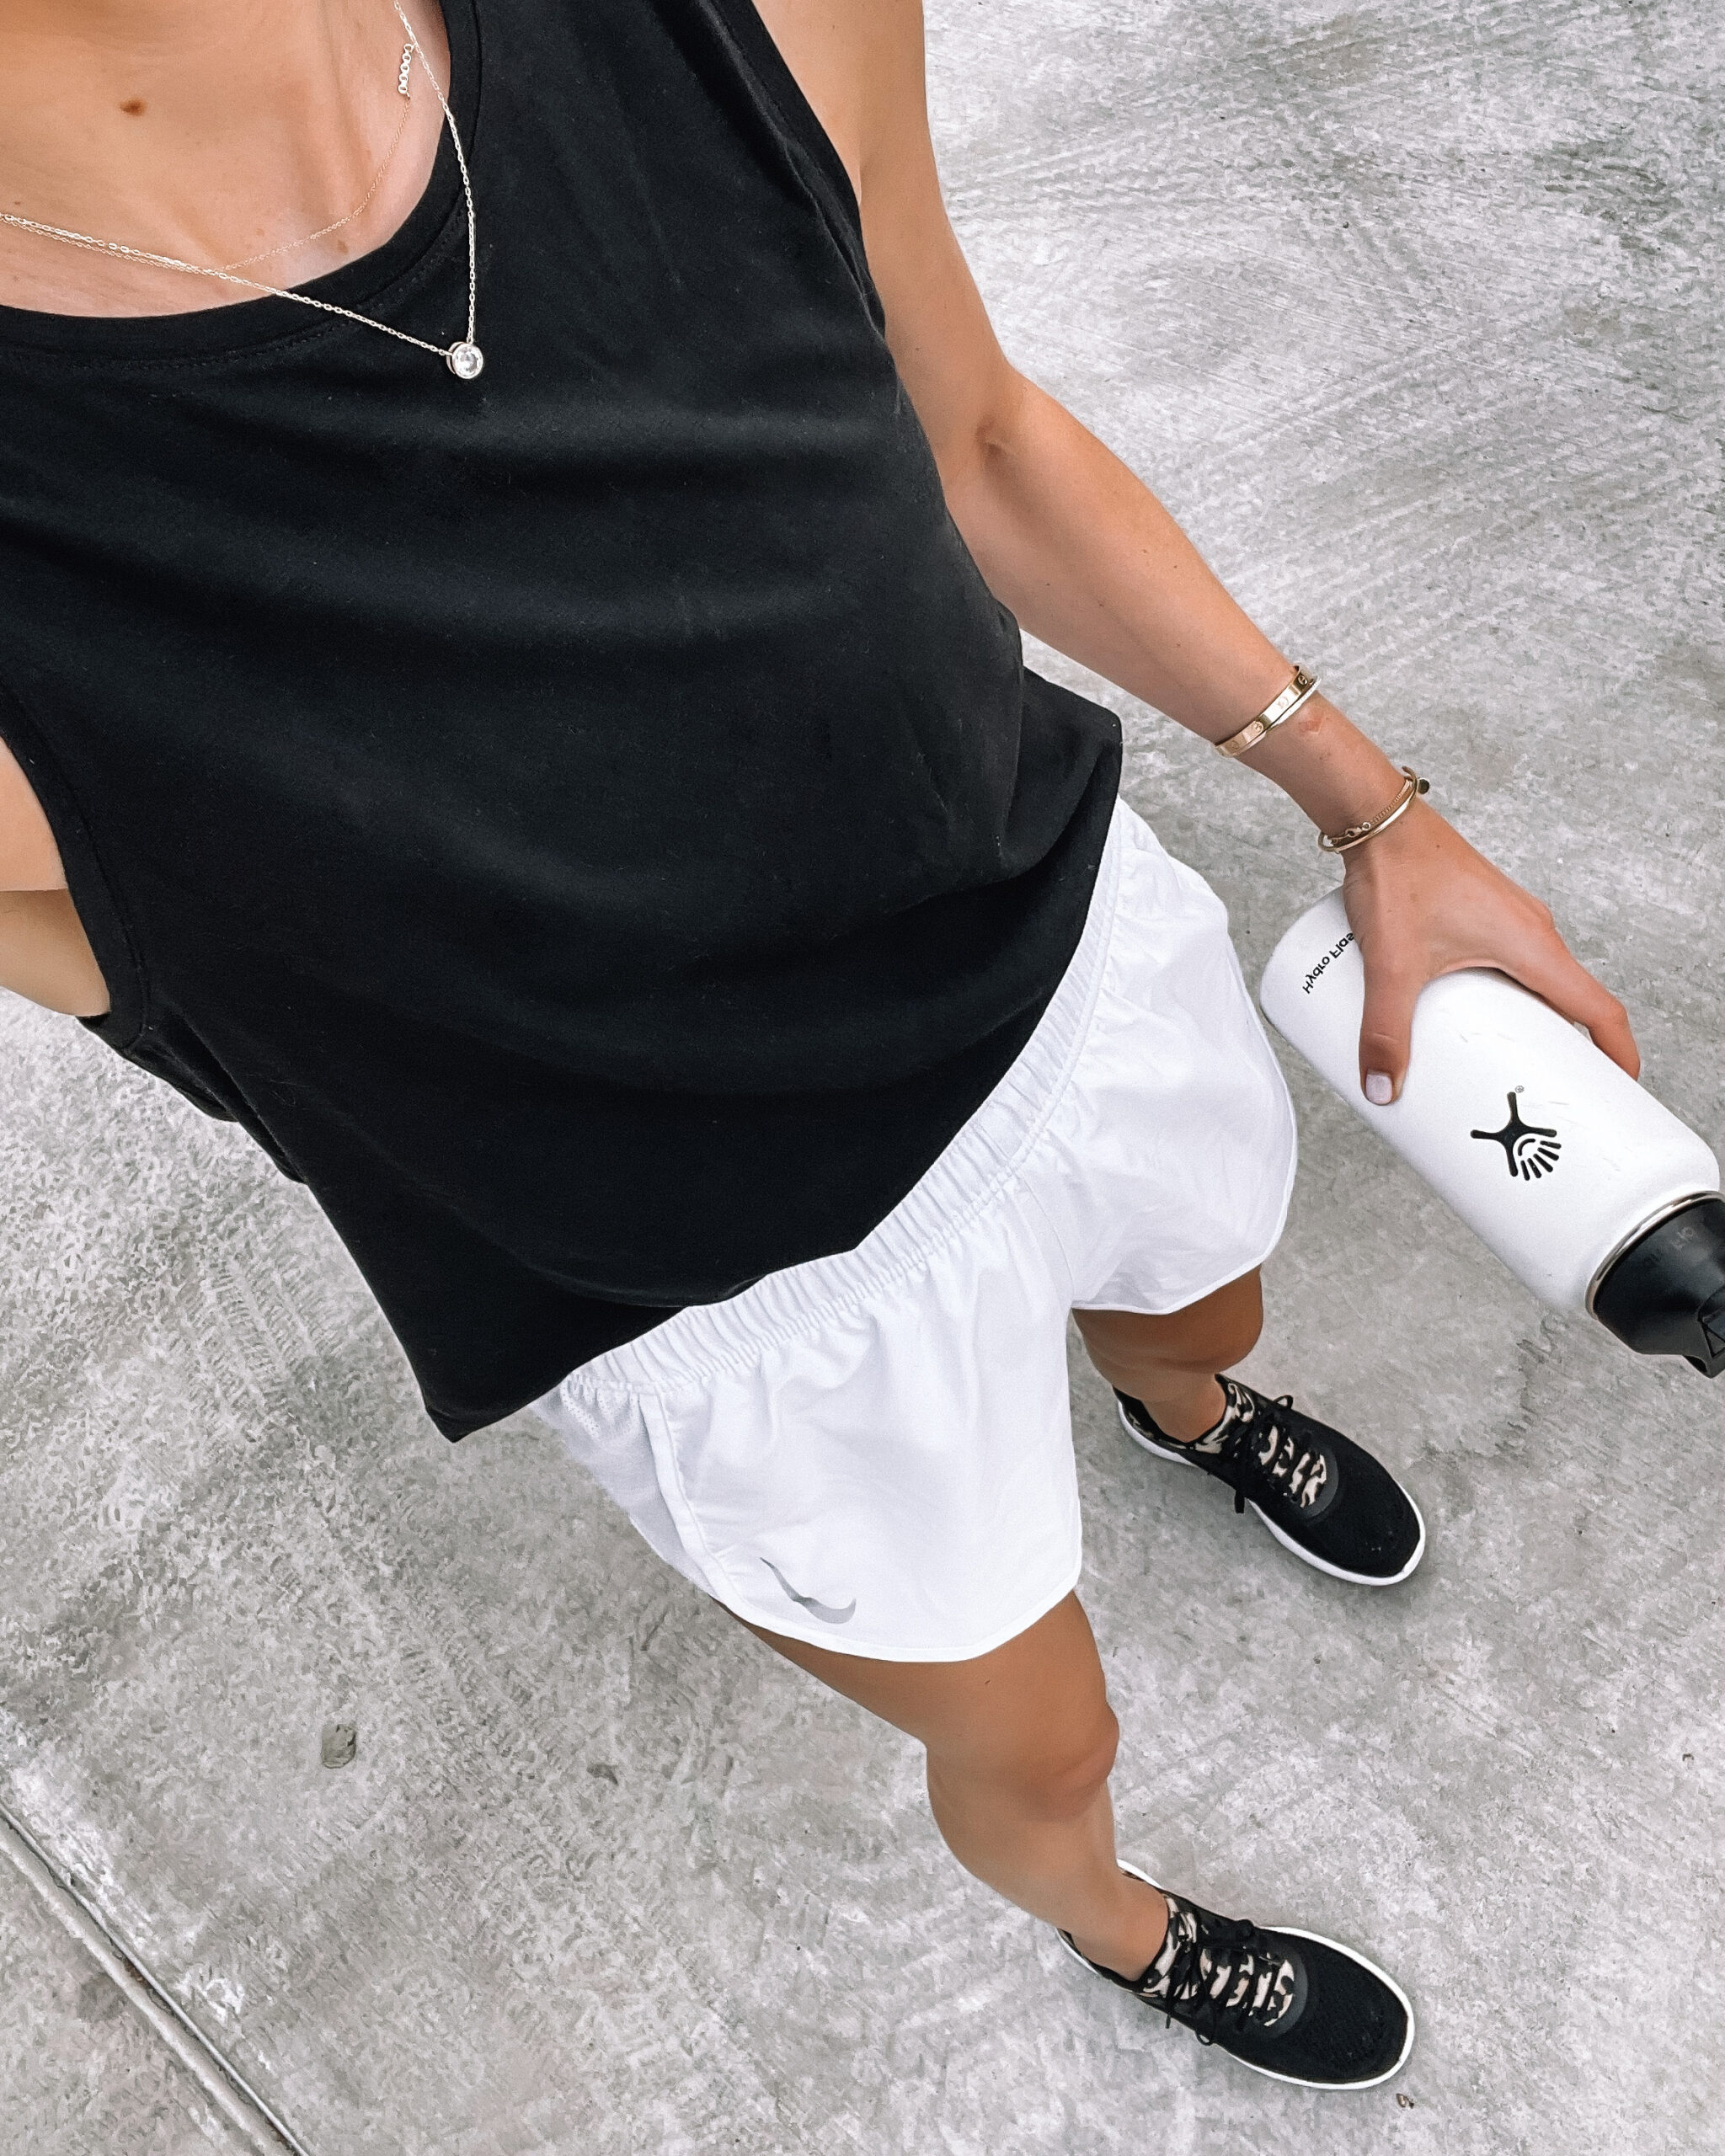 Fashion Jackson Wearing Black Muscle Workout Tank White Nike Running Shorts With Liner APL Black Leopard Sneakers White Hydroflask Womens Workout Outfit